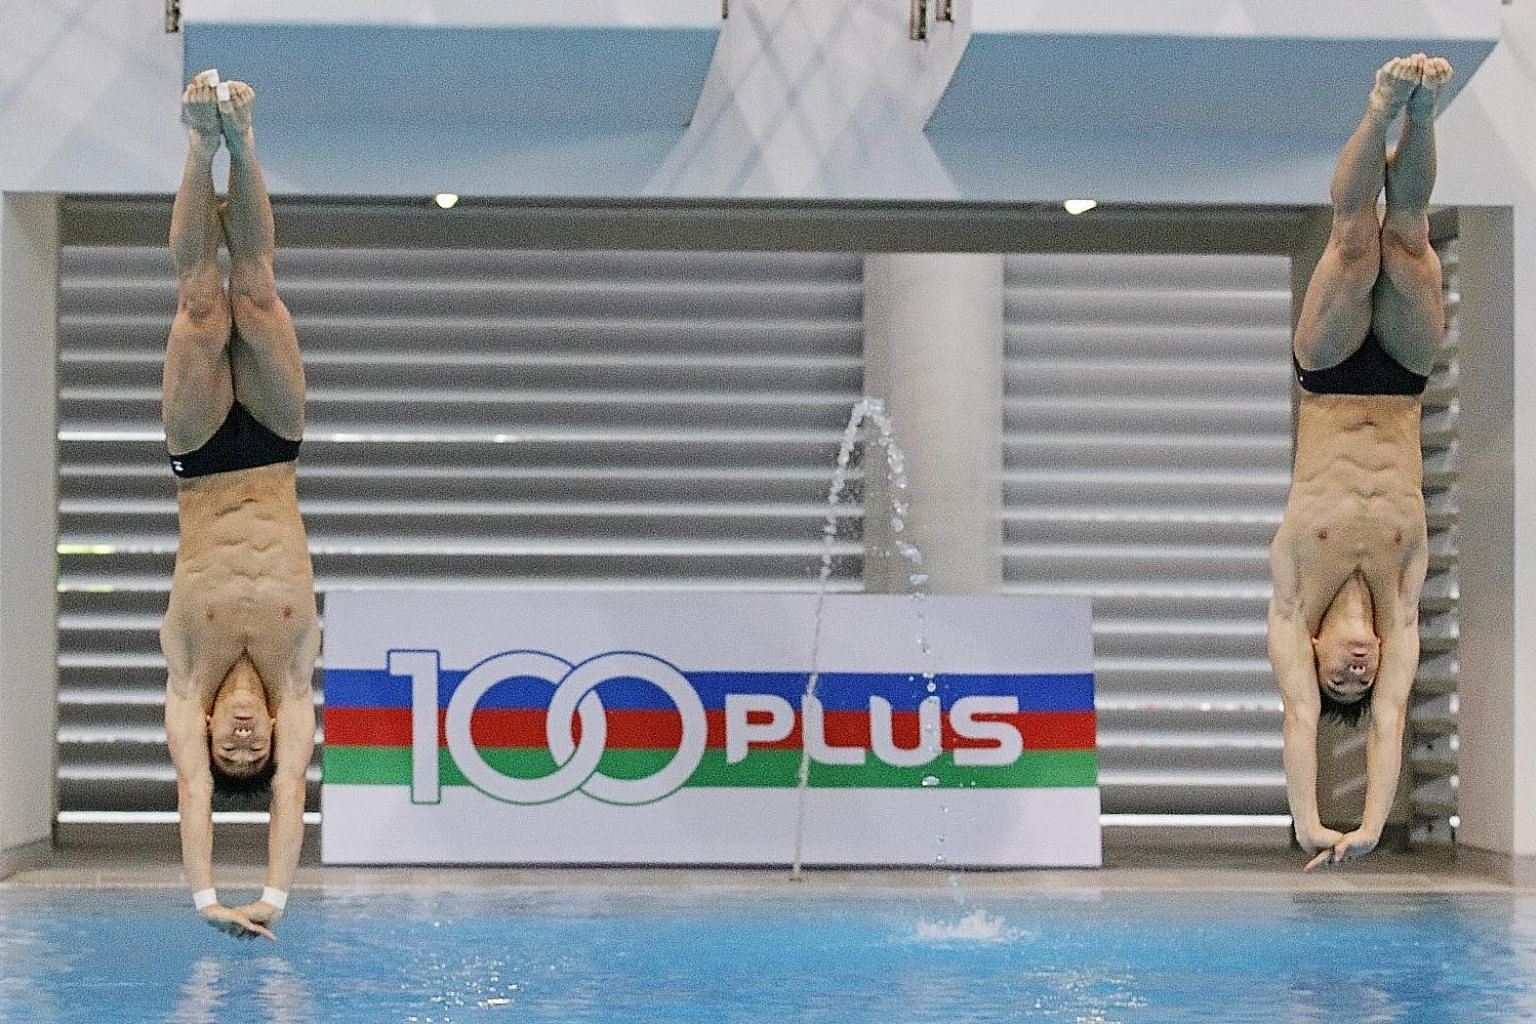 Twins Mark and Timothy Lee scored 362.31 points in winning the synchronised 3m springboard gold at the Singapore leg of the Fina Diving Grand Prix at the OCBC Aquatic Centre yesterday.